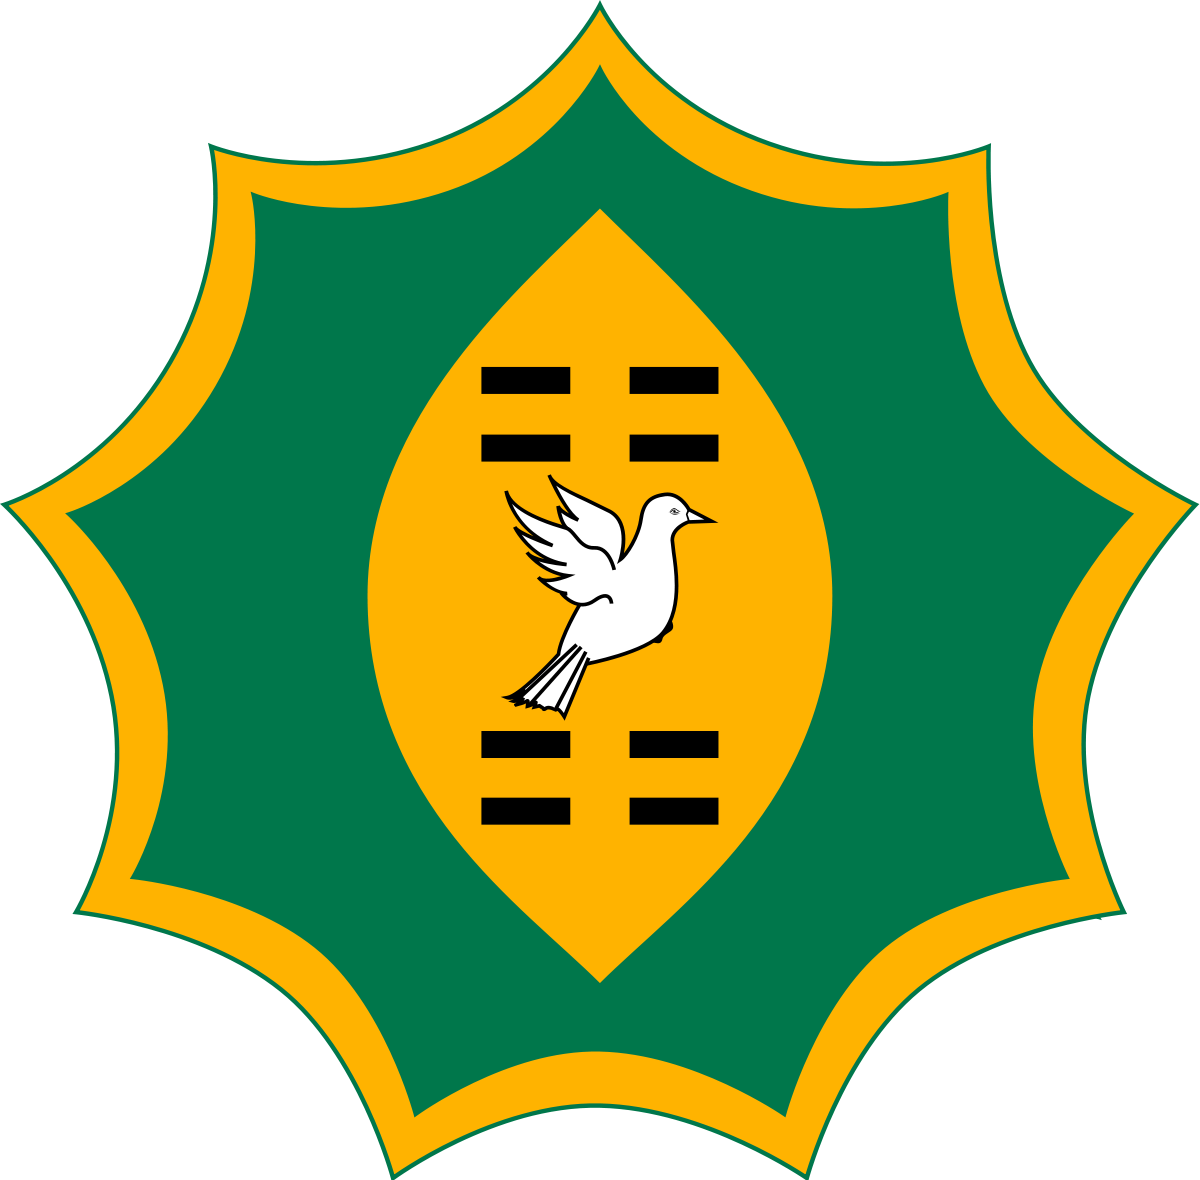 Emblem Of The South African Department Of Military.